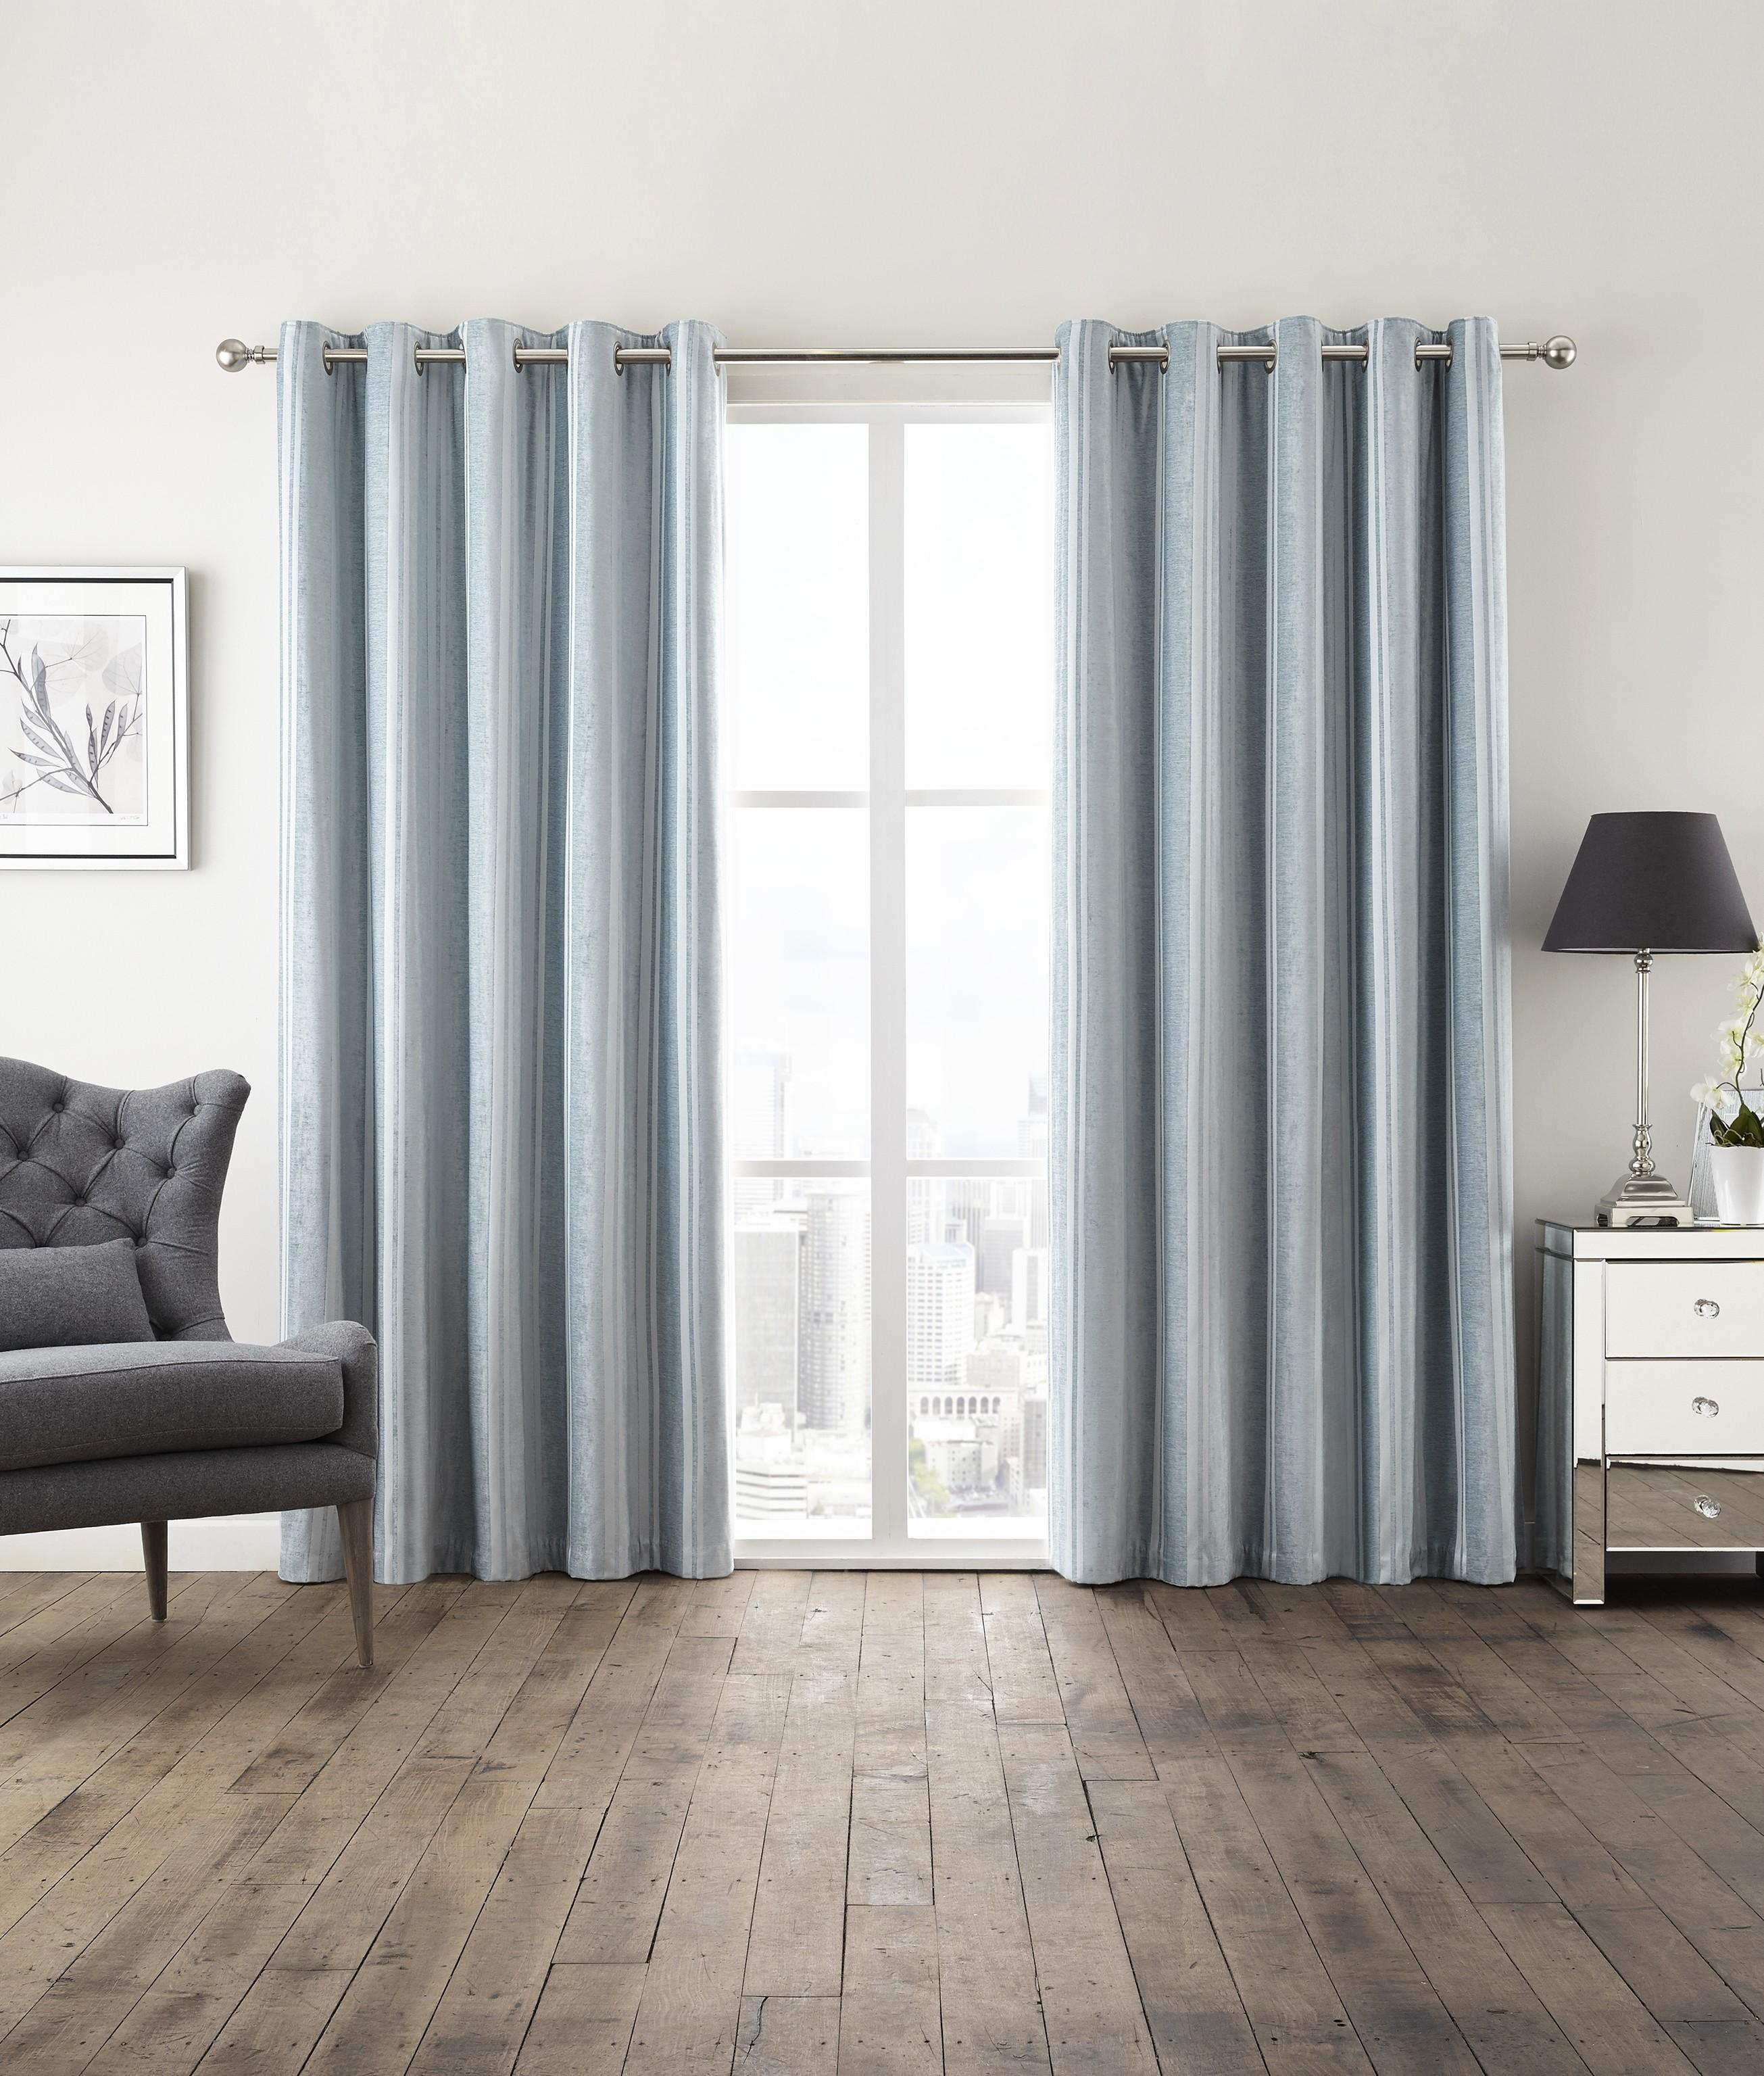 catalogs singapore eyelet softhome curtains photo curtain day pm